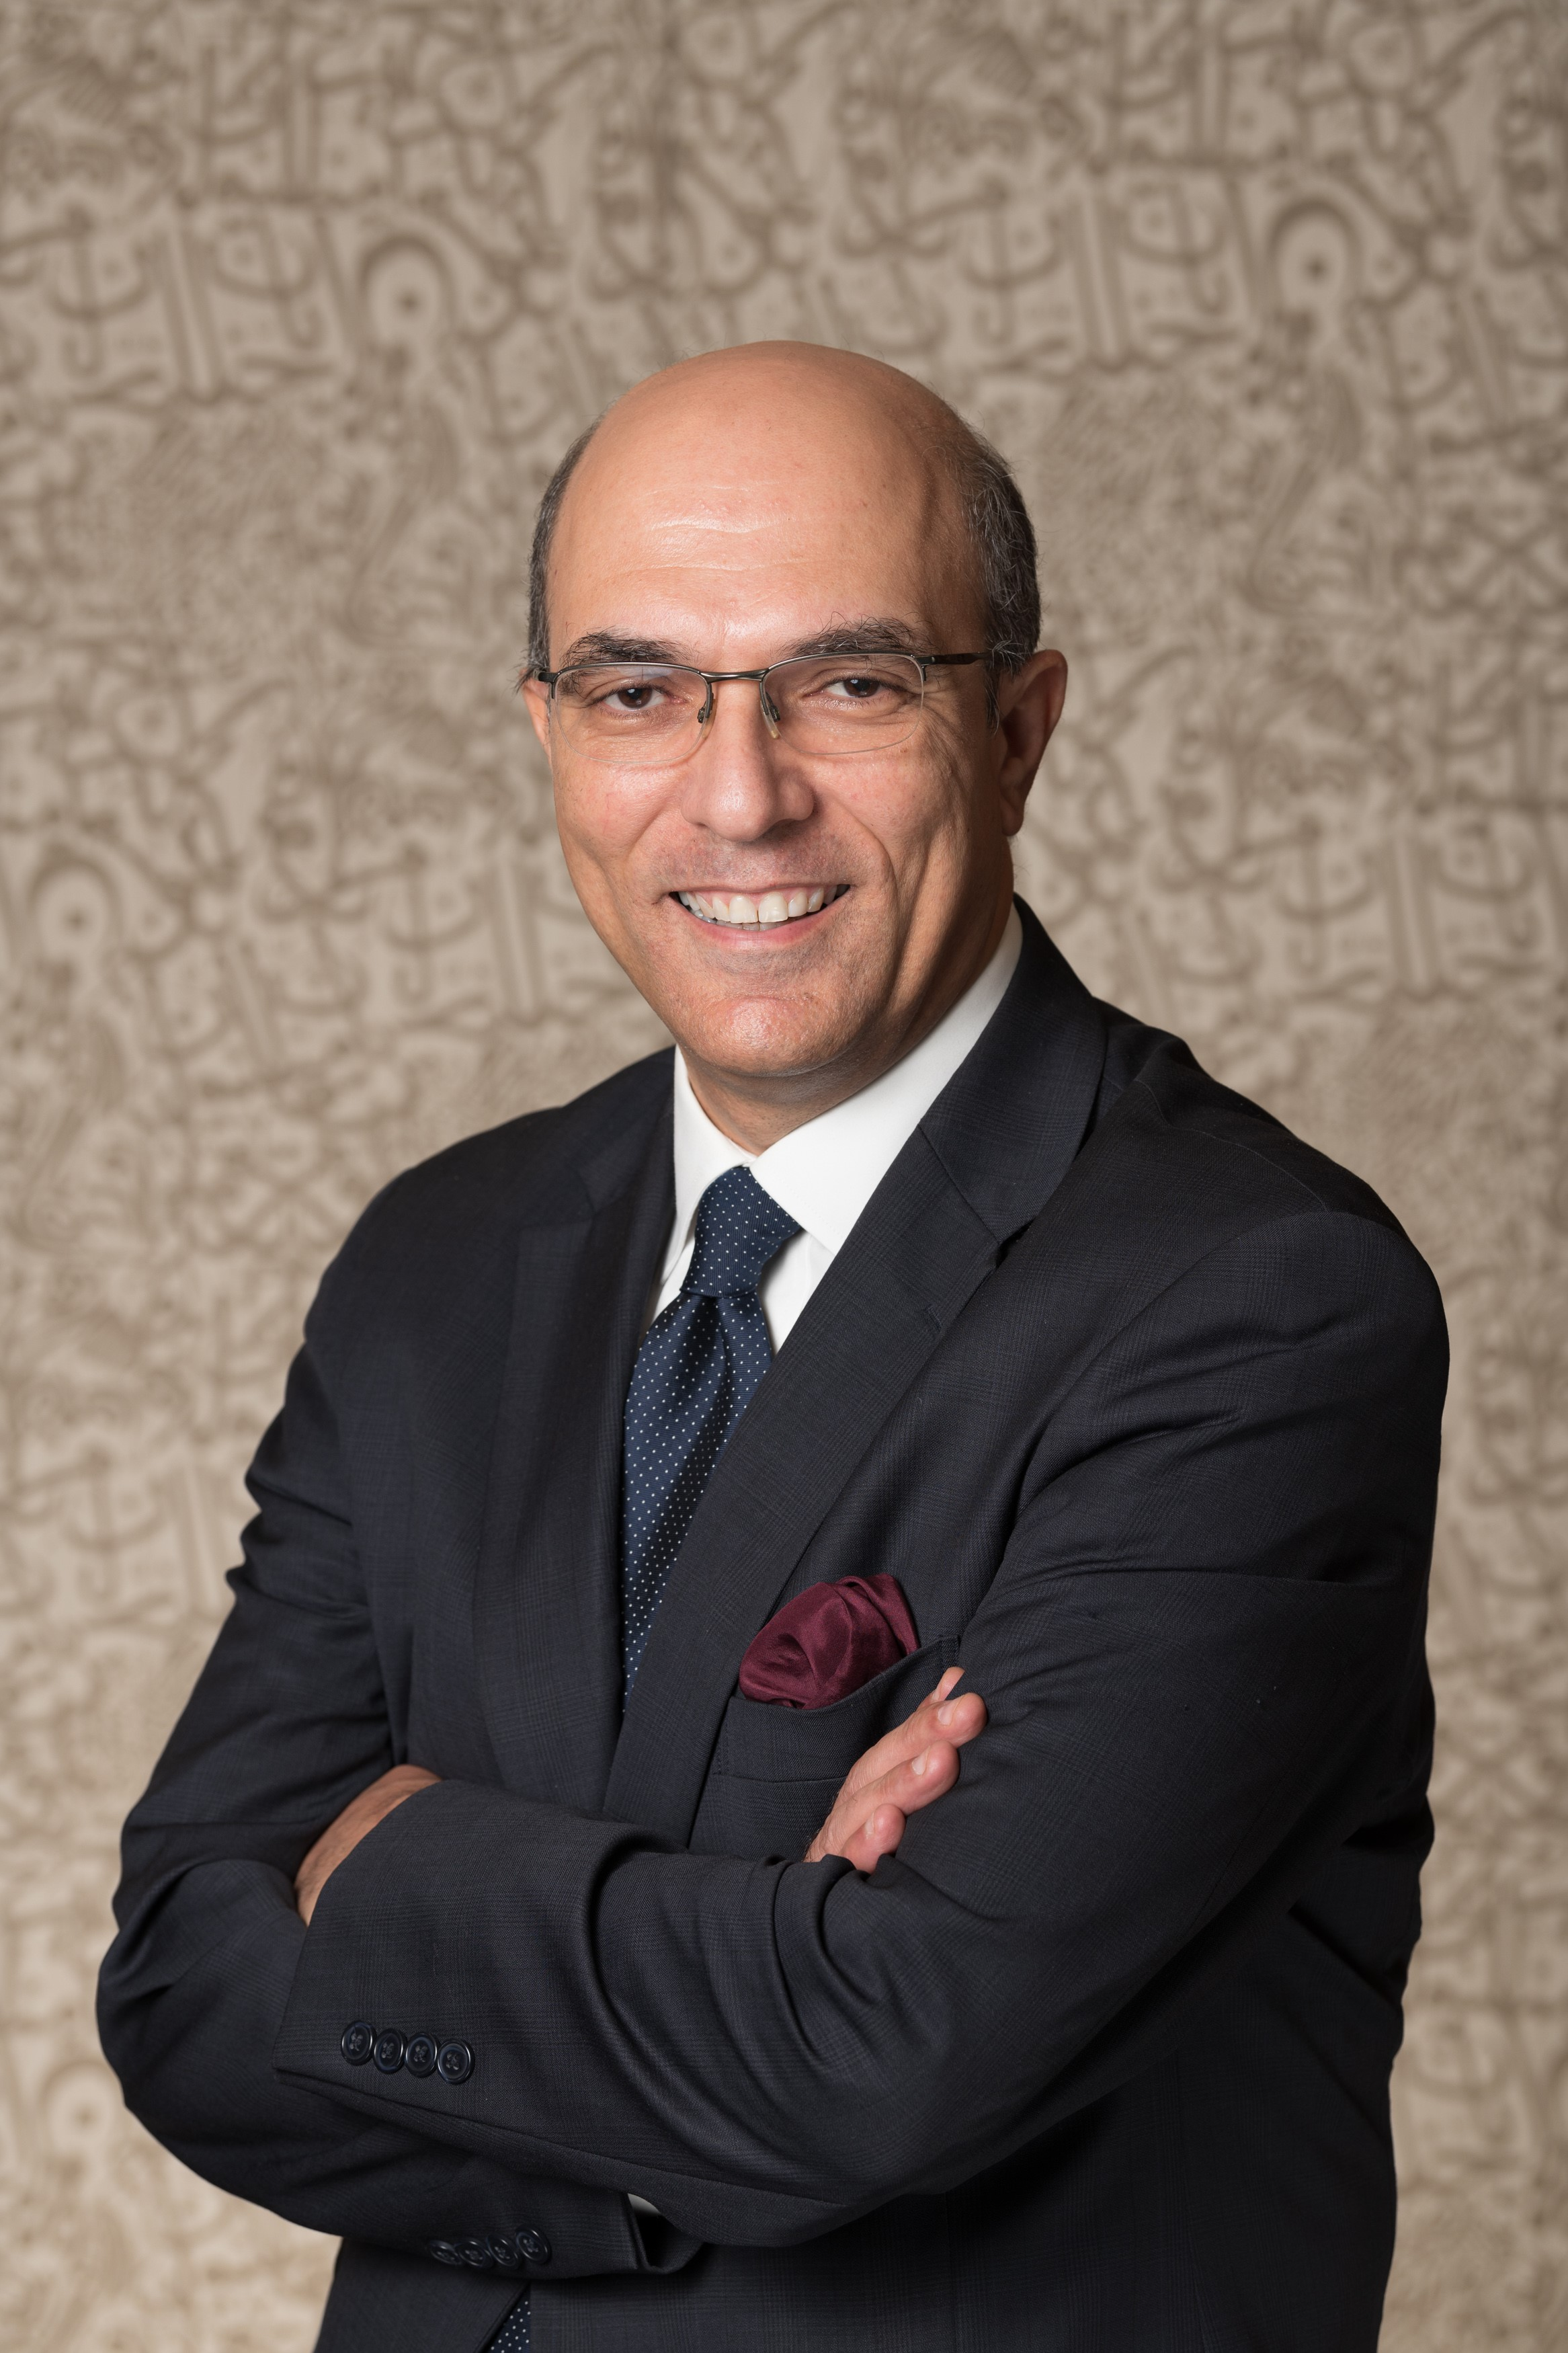 Sherif Kamel, Professor of Management, Dean of the School of Business at The American University in Cairo and President of the American Chamber of Commerce in Egypt.